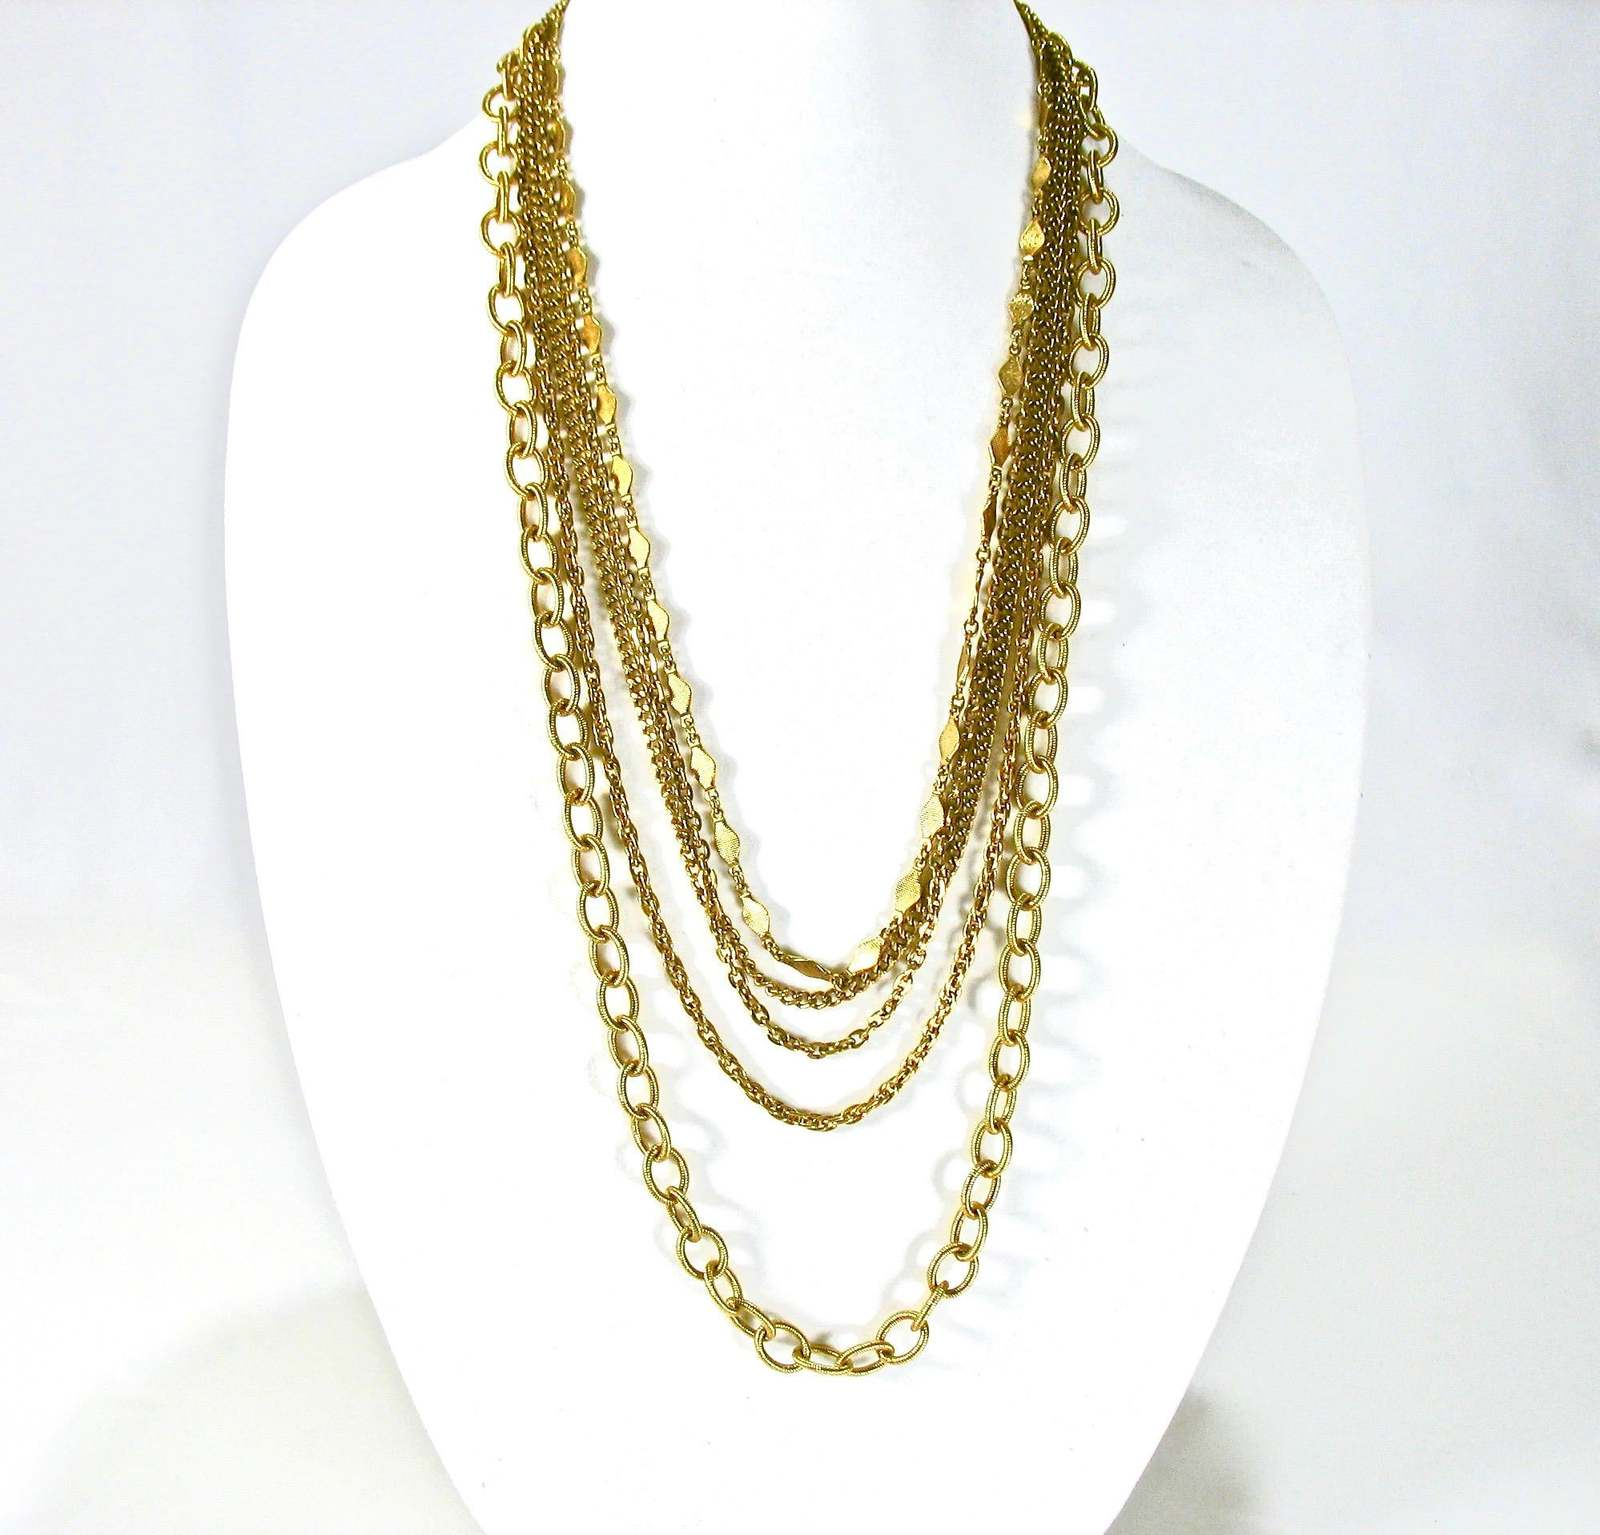 Primary image for Multiple Chain Necklace, Multi Chains, Five Strands, 1970's, Gold Tone, Box Clas